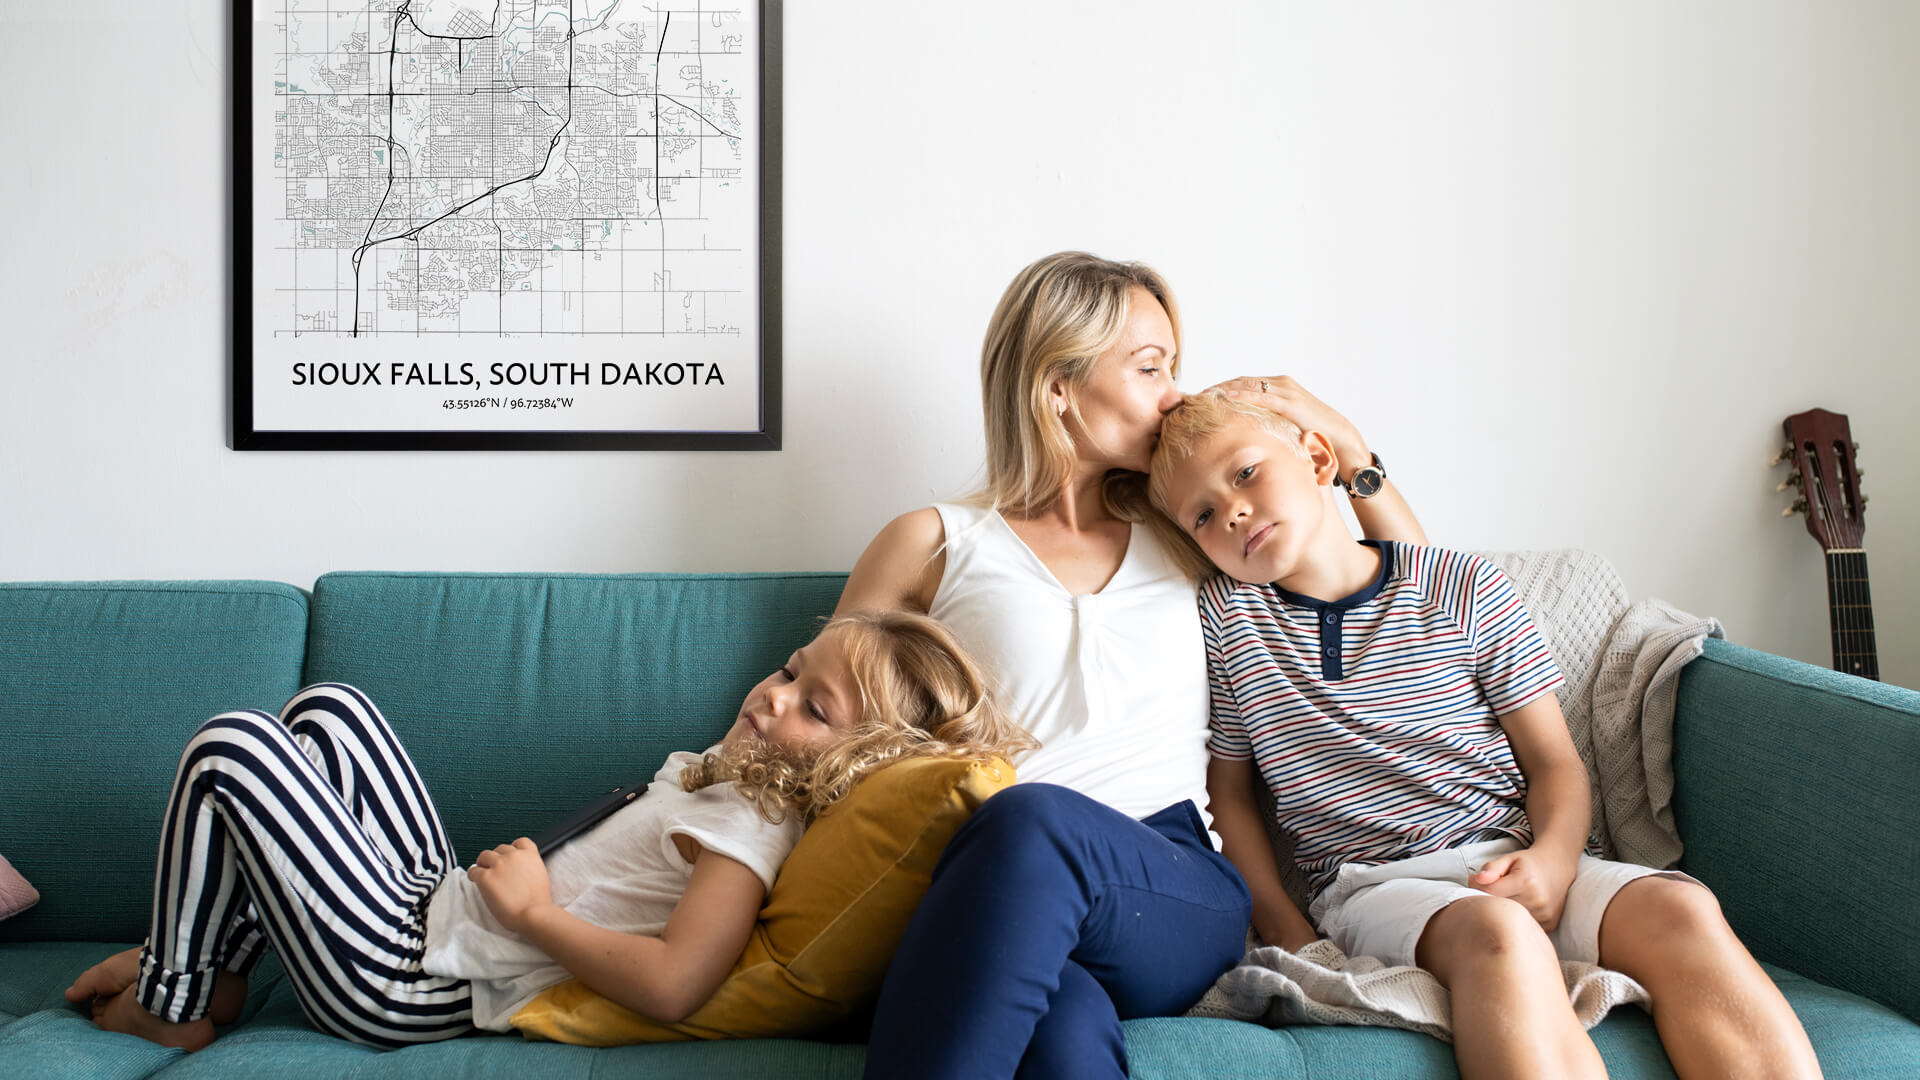 Sioux Falls map poster